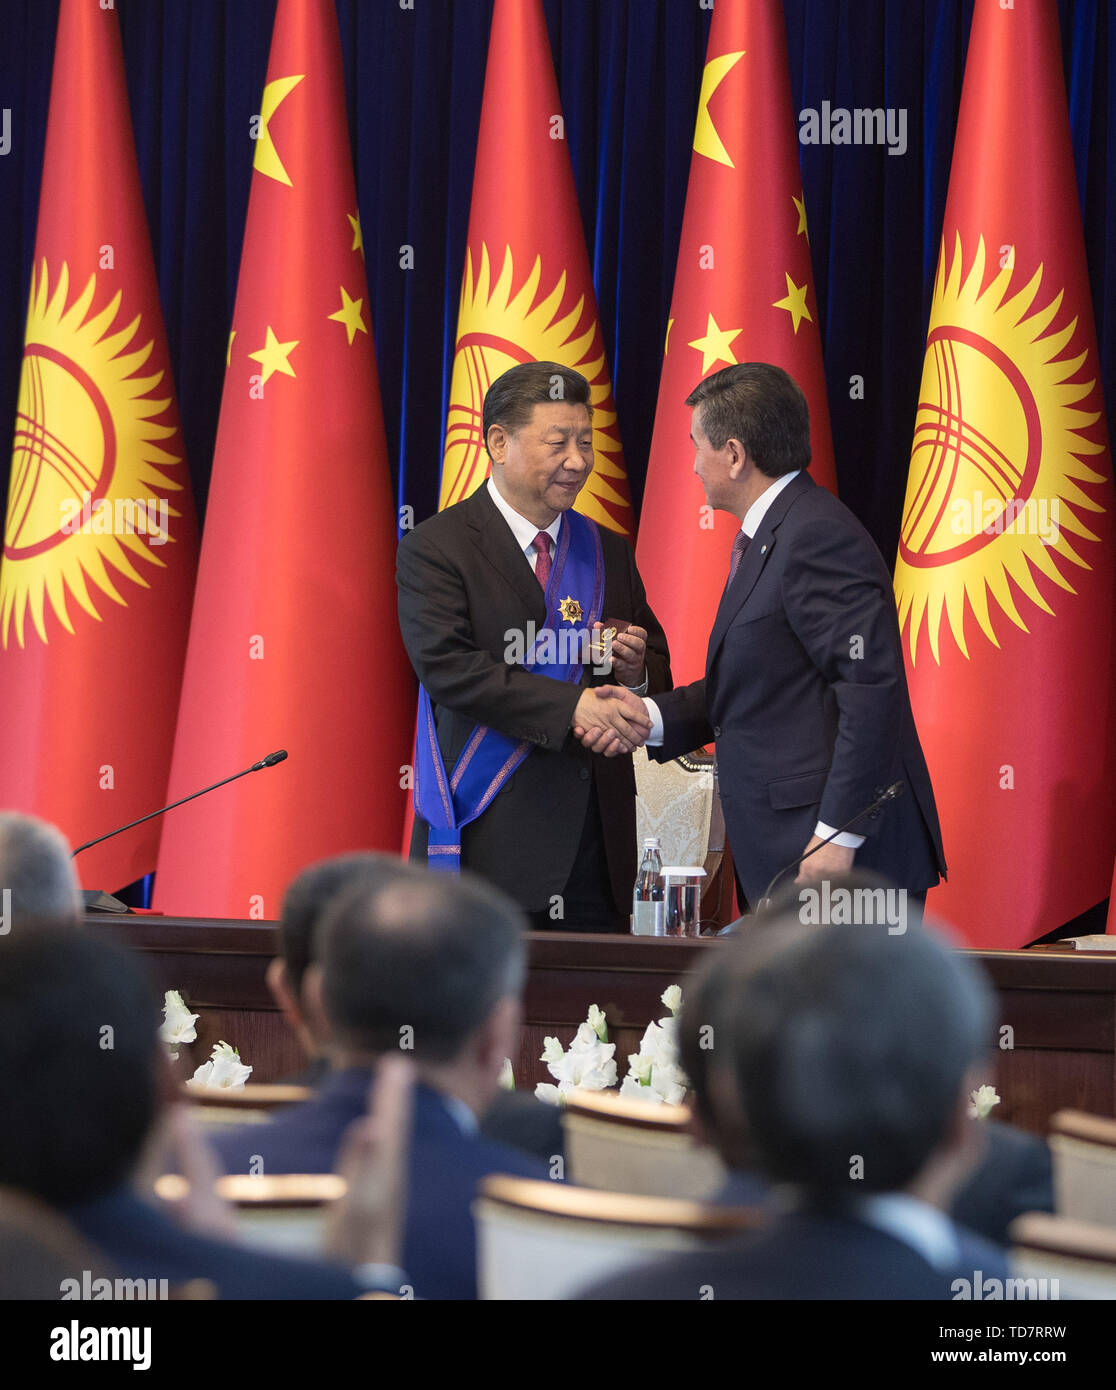 Bishkek, Kyrgyzstan. 13th June, 2019. Chinese President Xi Jinping is awarded the Manas Order of the First Degree, the highest national prize of Kyrgyzstan, by his Kyrgyz counterpart Sooronbay Jeenbekov in Bishkek, Kyrgyzstan, June 13, 2019. Credit: Fei Maohua/Xinhua/Alamy Live News - Stock Image